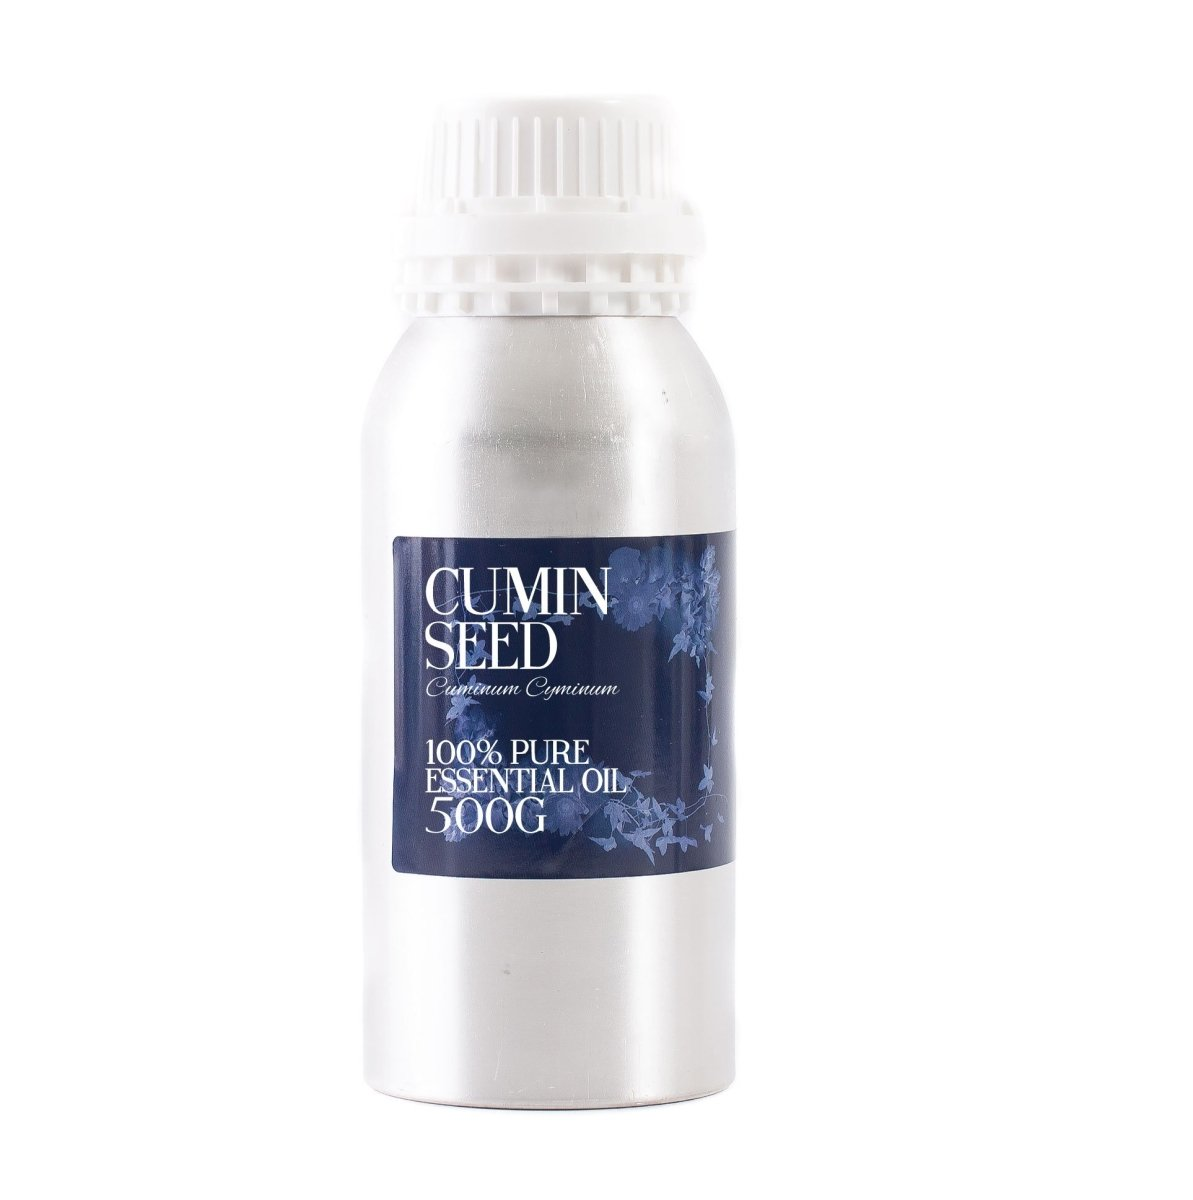 Cumin Seed Essential Oil - Mystic Moments UK